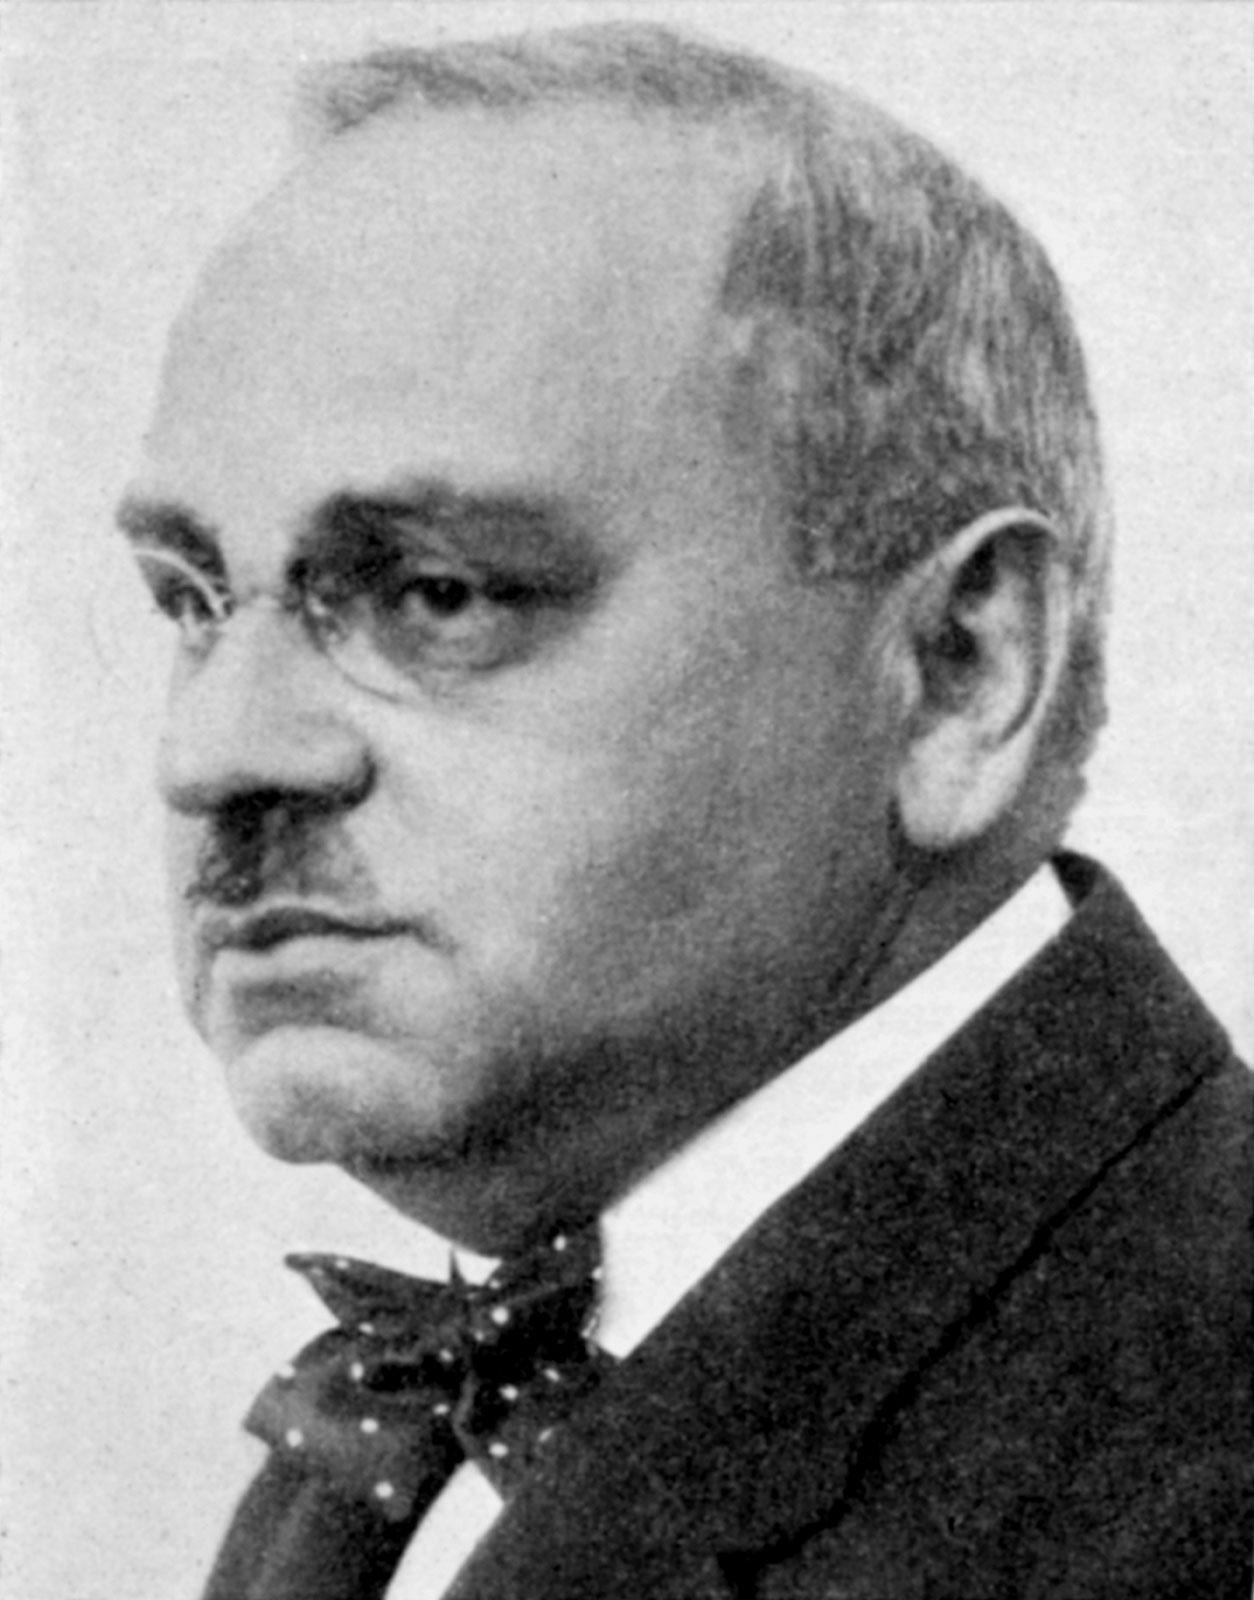 alfred adler psychology Alfred adler 1870-1937 alfred adler was born in vienna austria as the second of six children much of his career was molded from childhood experiences, particularly an incident when he was only five years old diagnosed with pneumonia, adler overheard his physician tell his father that he doubted alfred would recover.